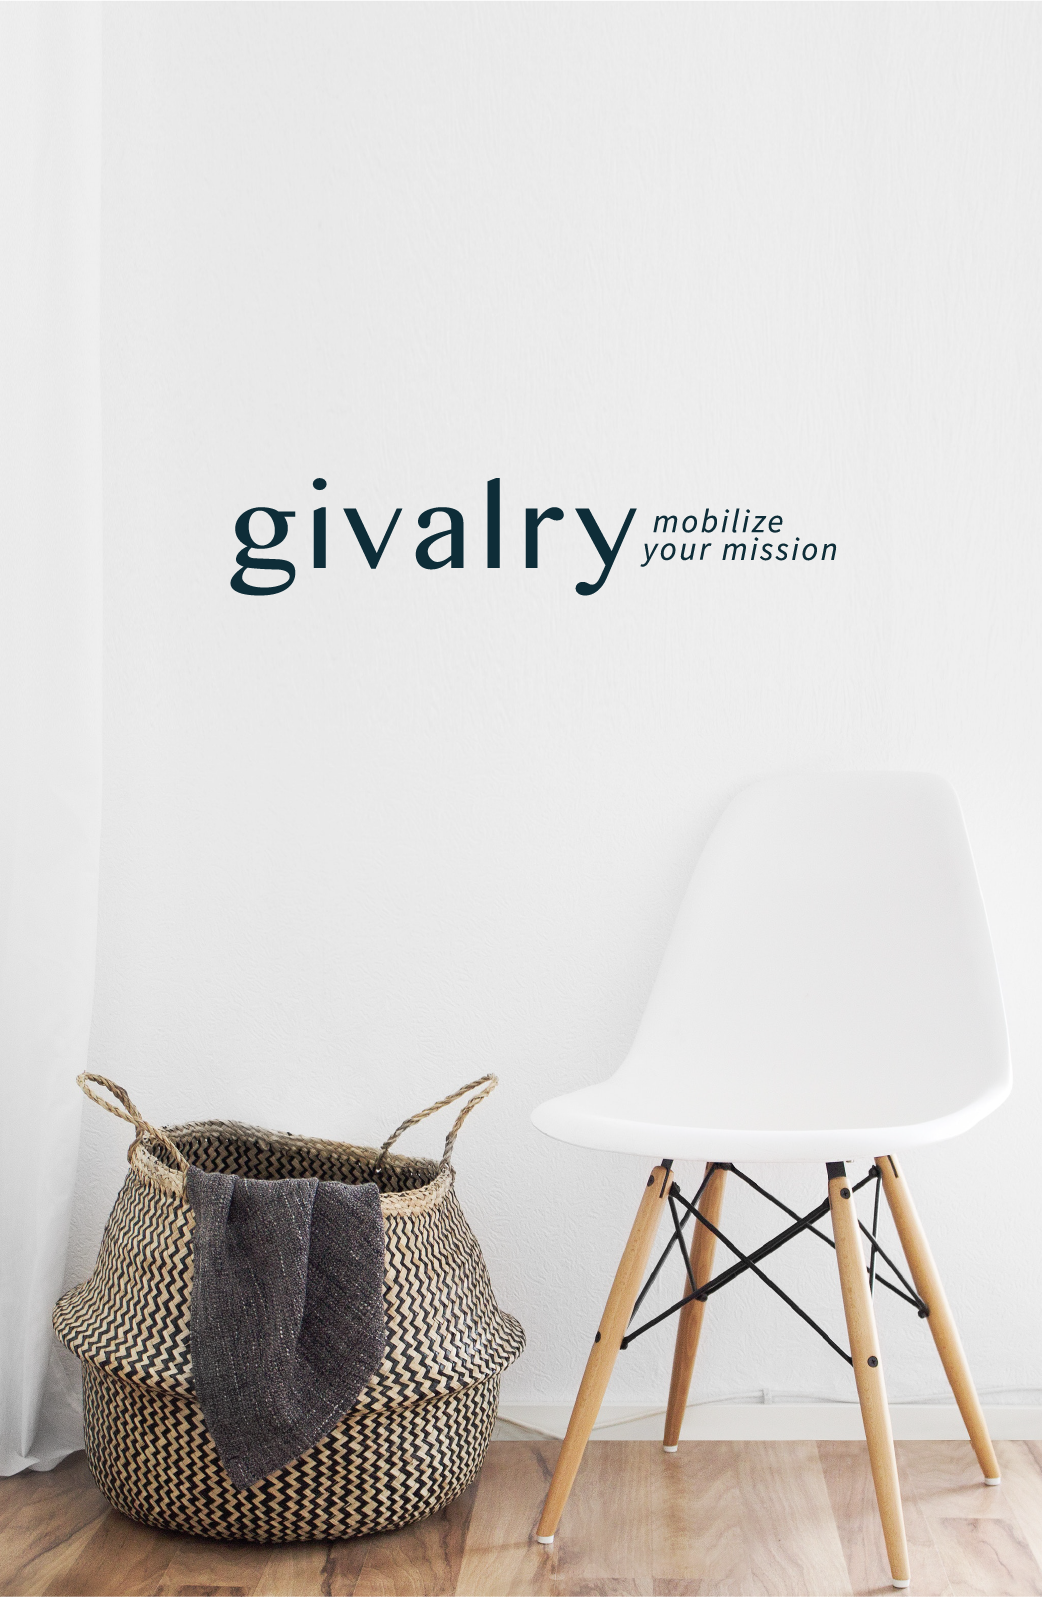 Givalry full logo with motto situated on top of an image of a brown wicker laundry basket with a dark purple blanket sitting on the edge, next to a white backed chair with light wooden legs.